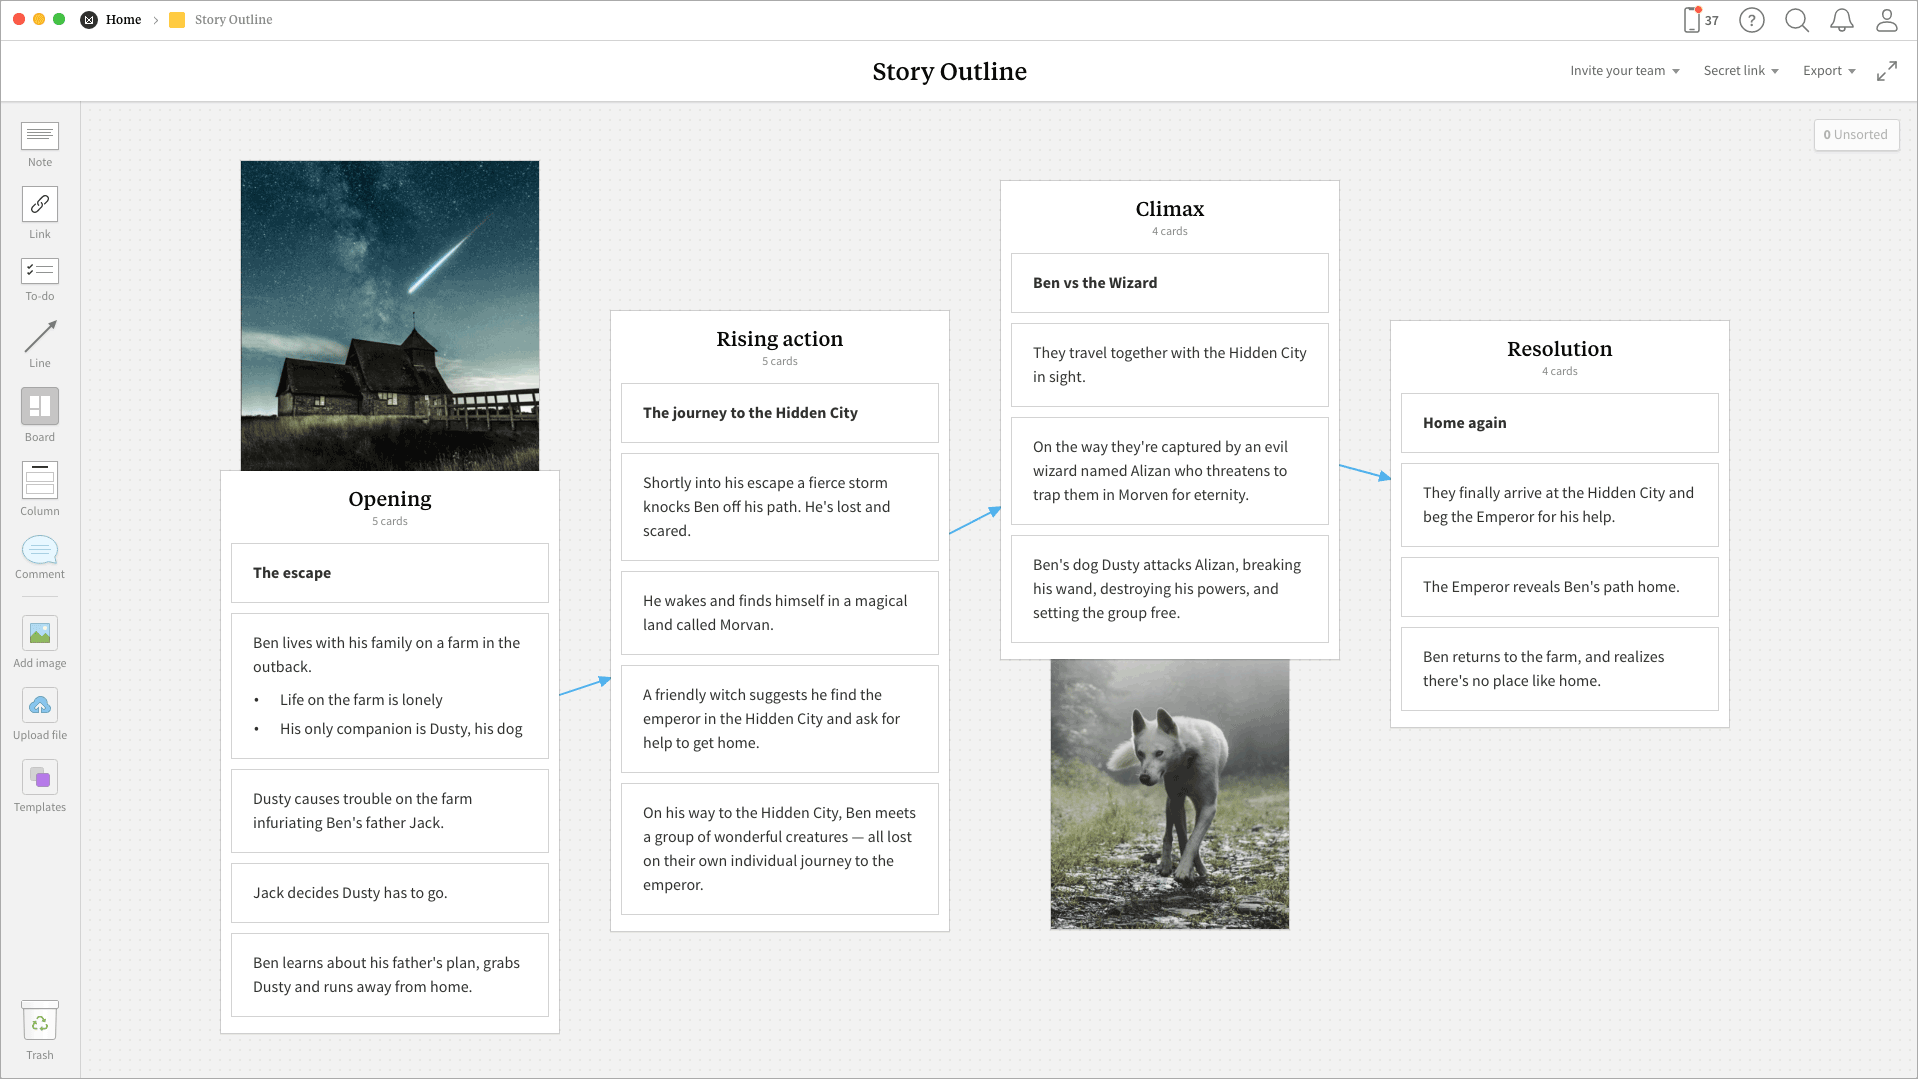 Completed Story Outline template in Milanote app